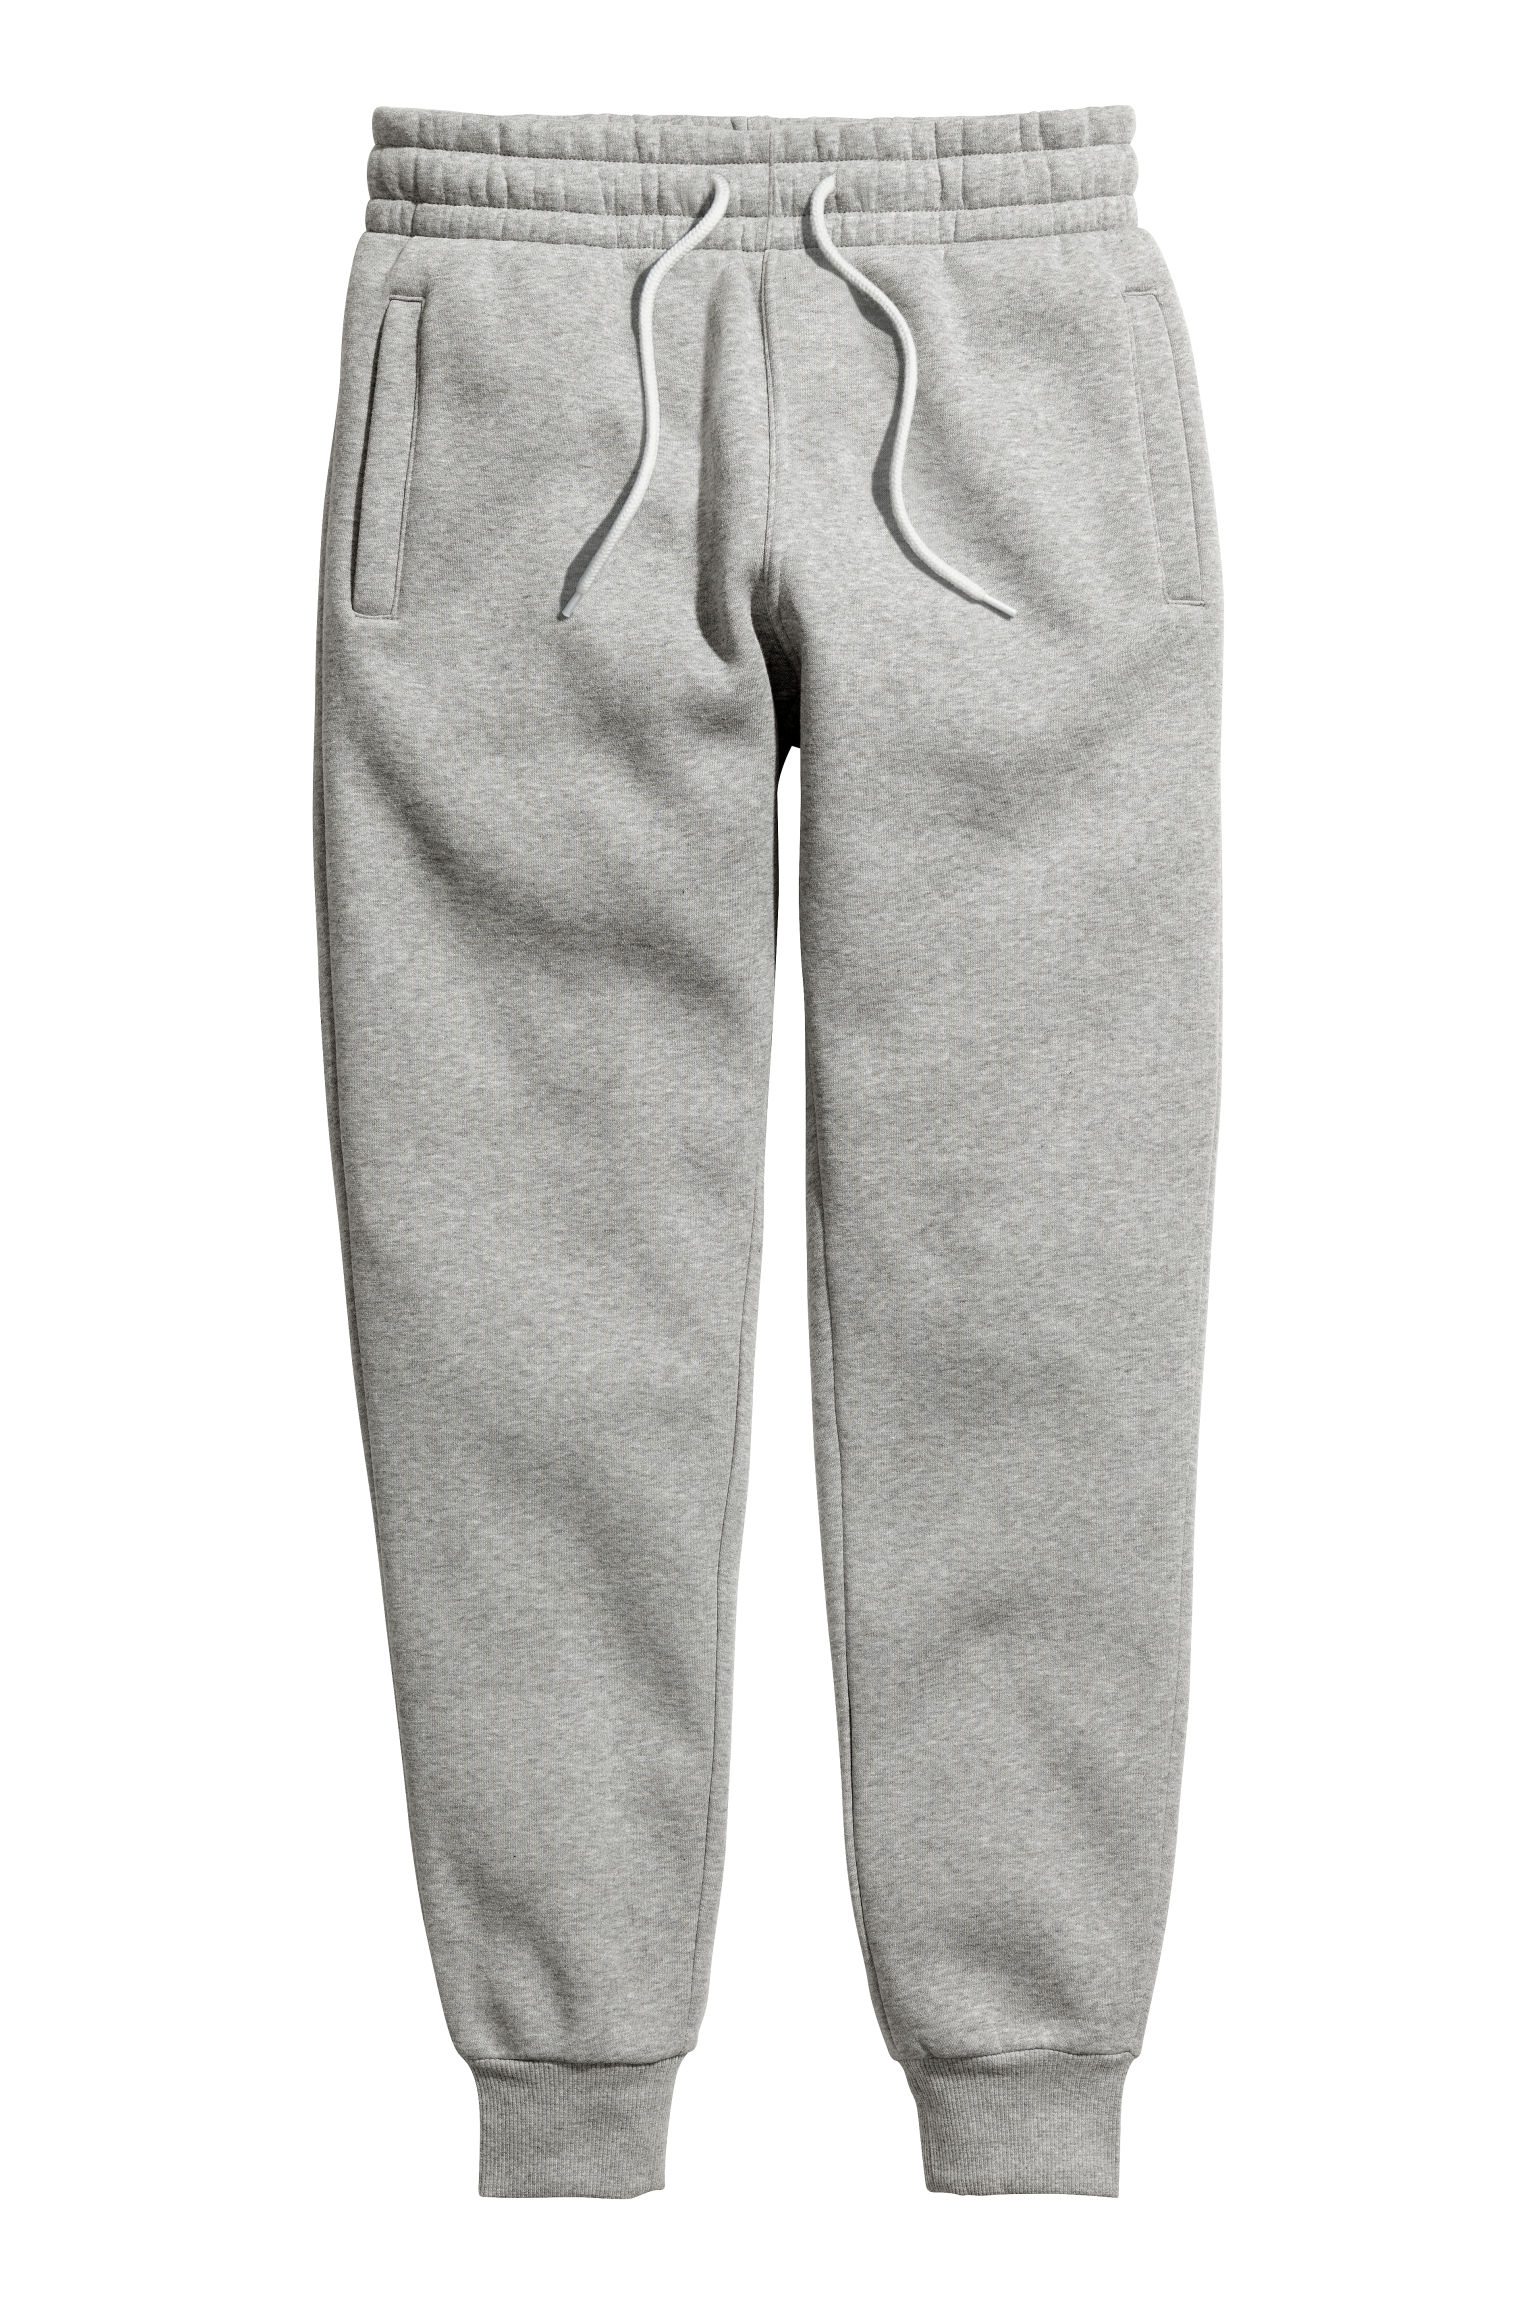 5bf5610b812ea Sweatpants - Black - Men | H&M US